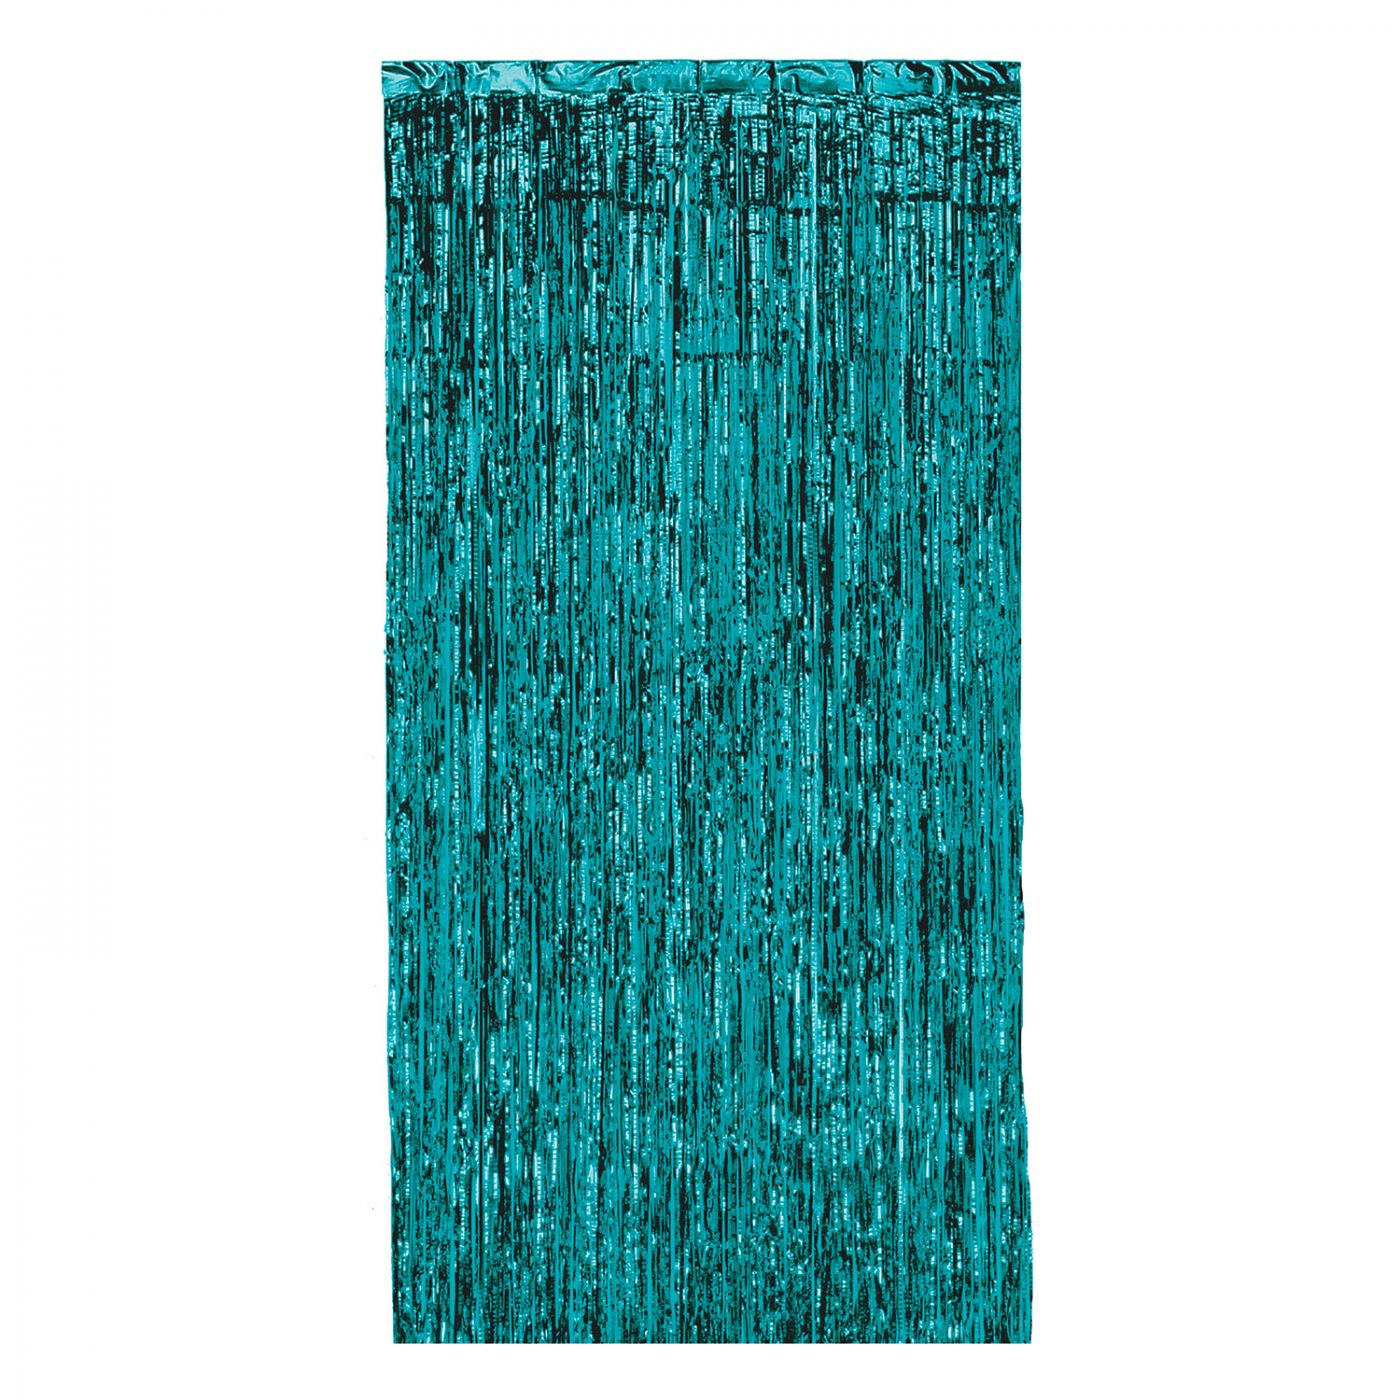 Image of 1-Ply Gleam N Curtain